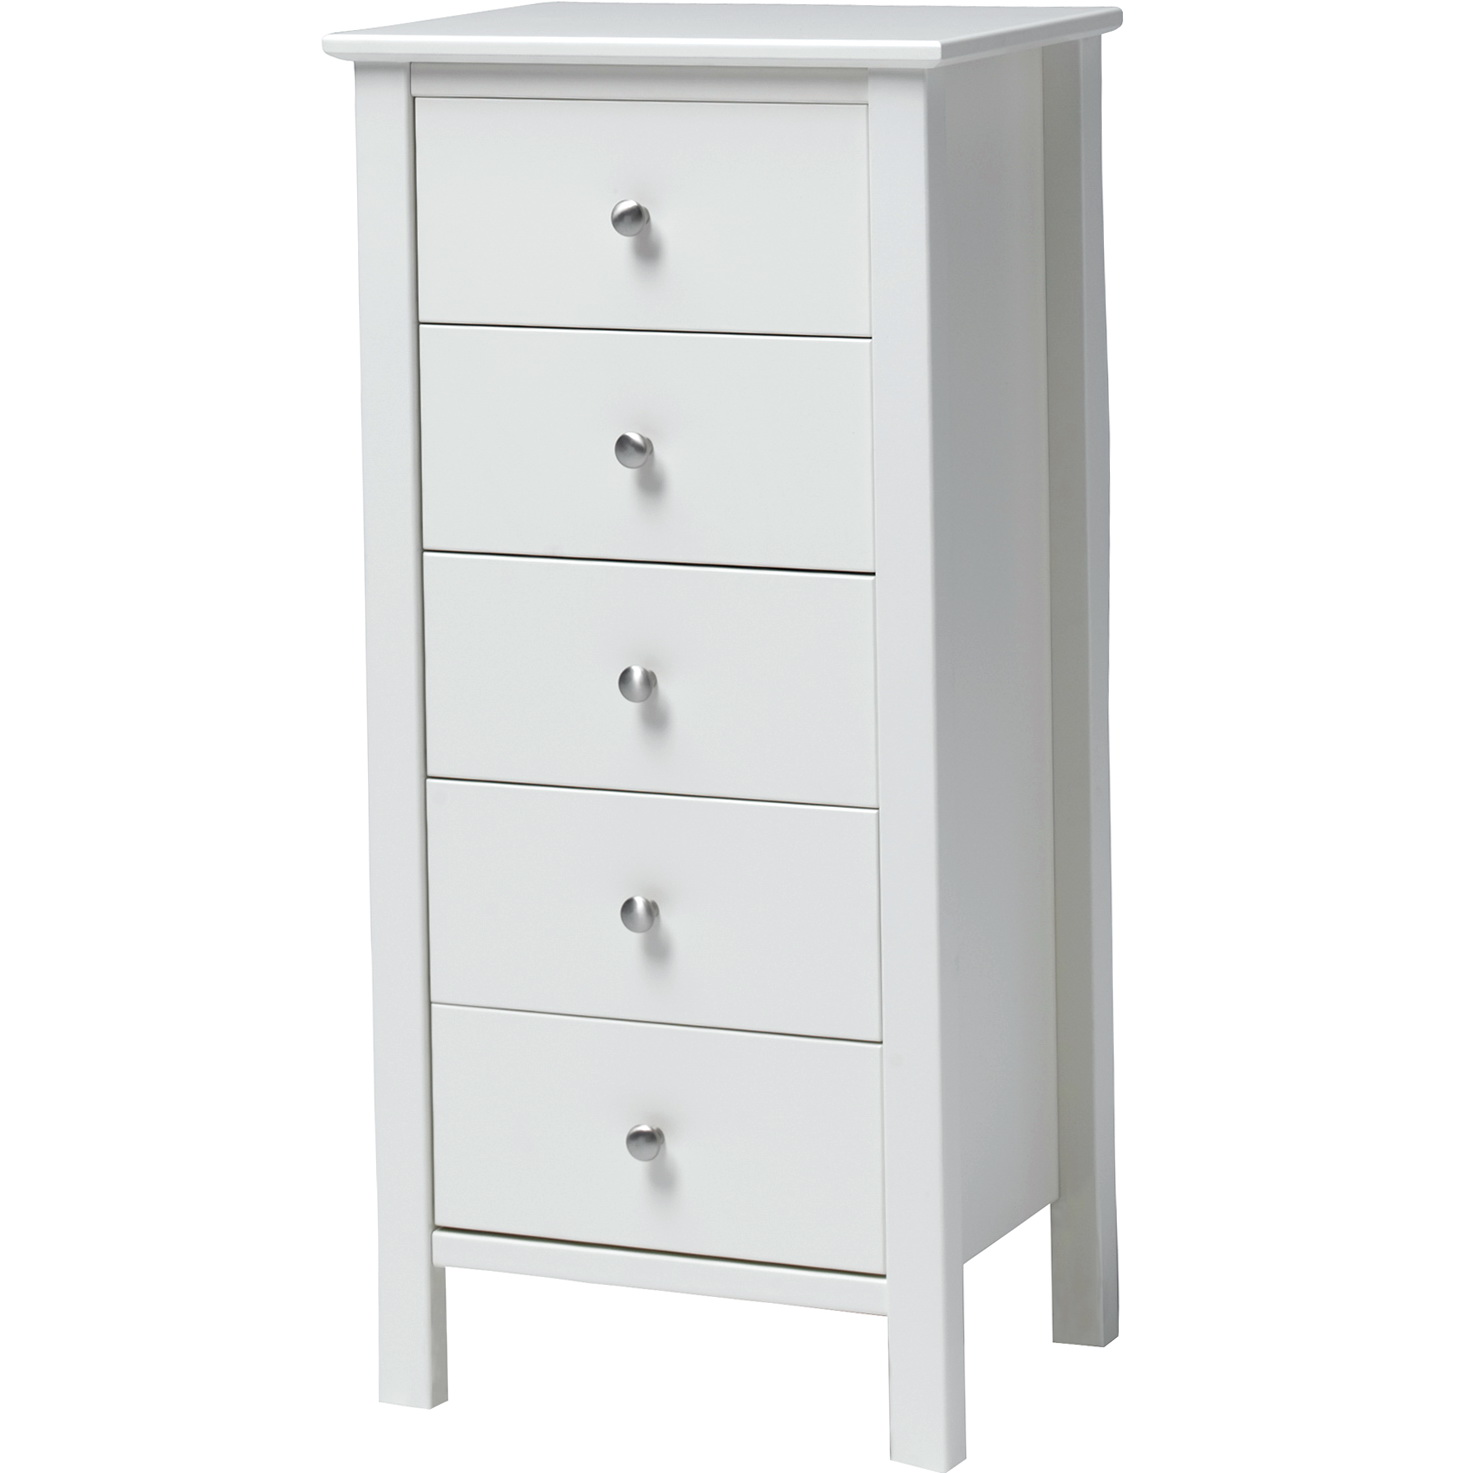 Permalink to Tall Boy Dresser White